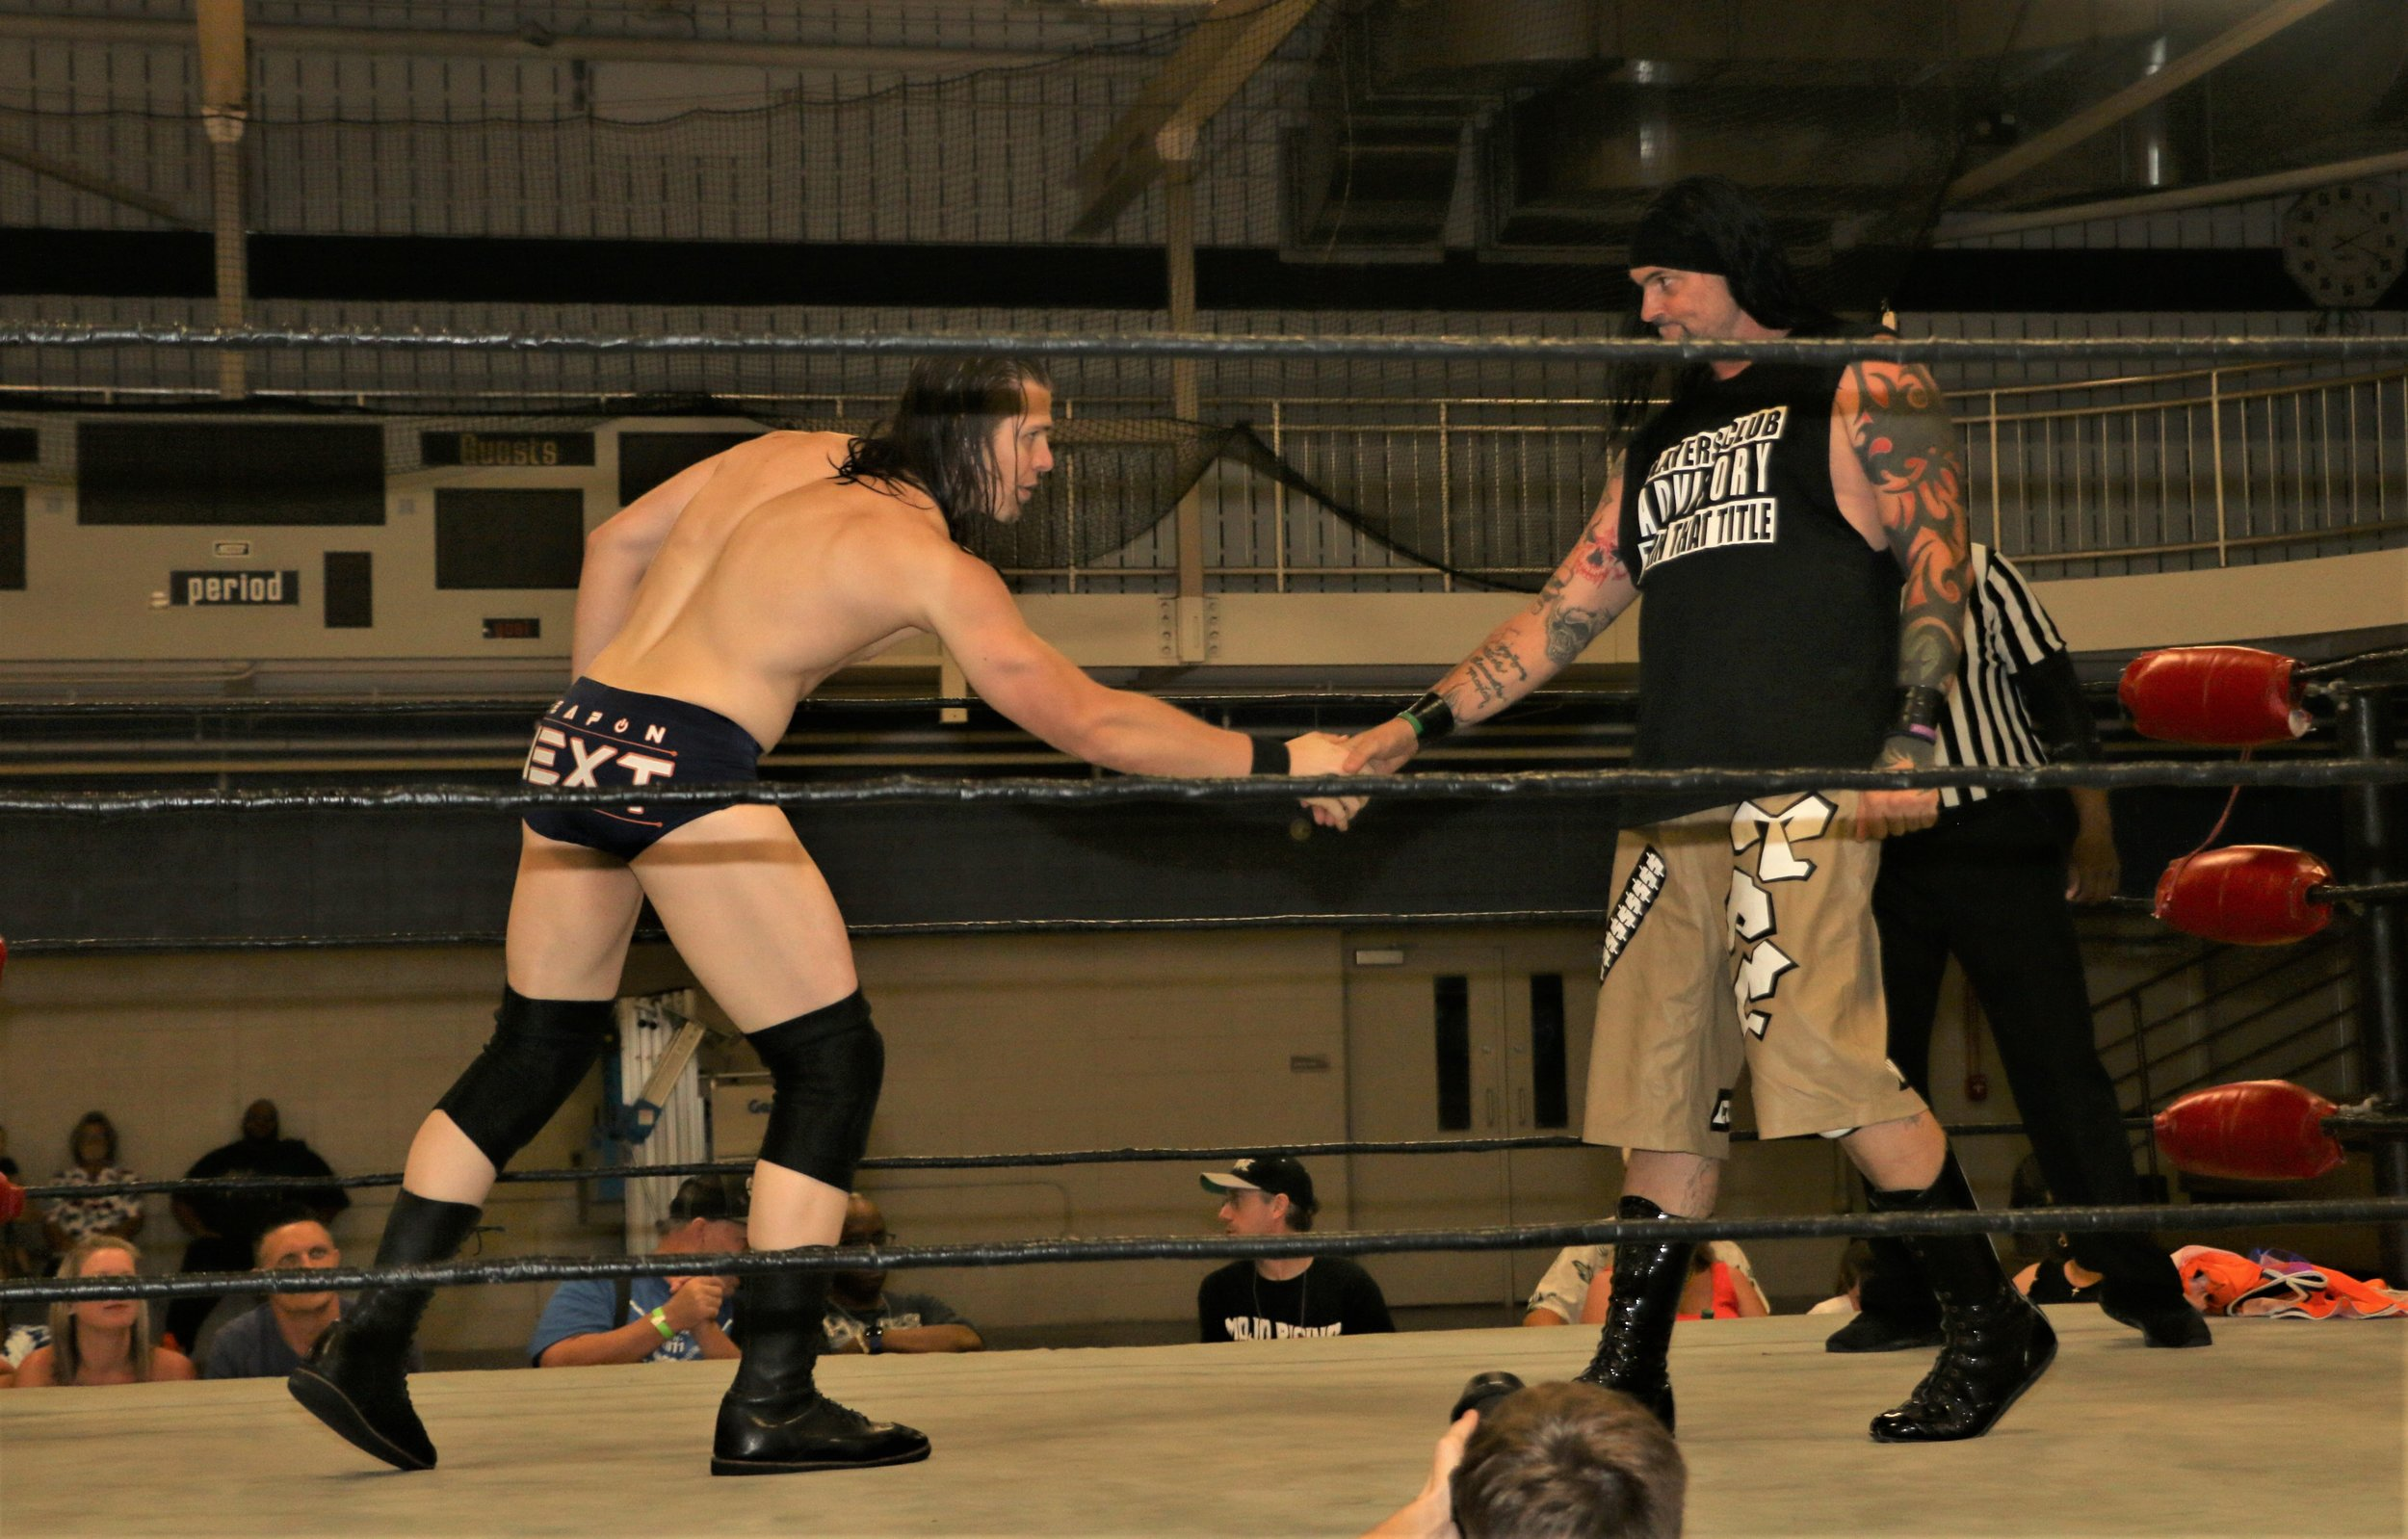 Frontline Pro Champion Logan Lynch, left, shakes hands with J Ca$h before the match.